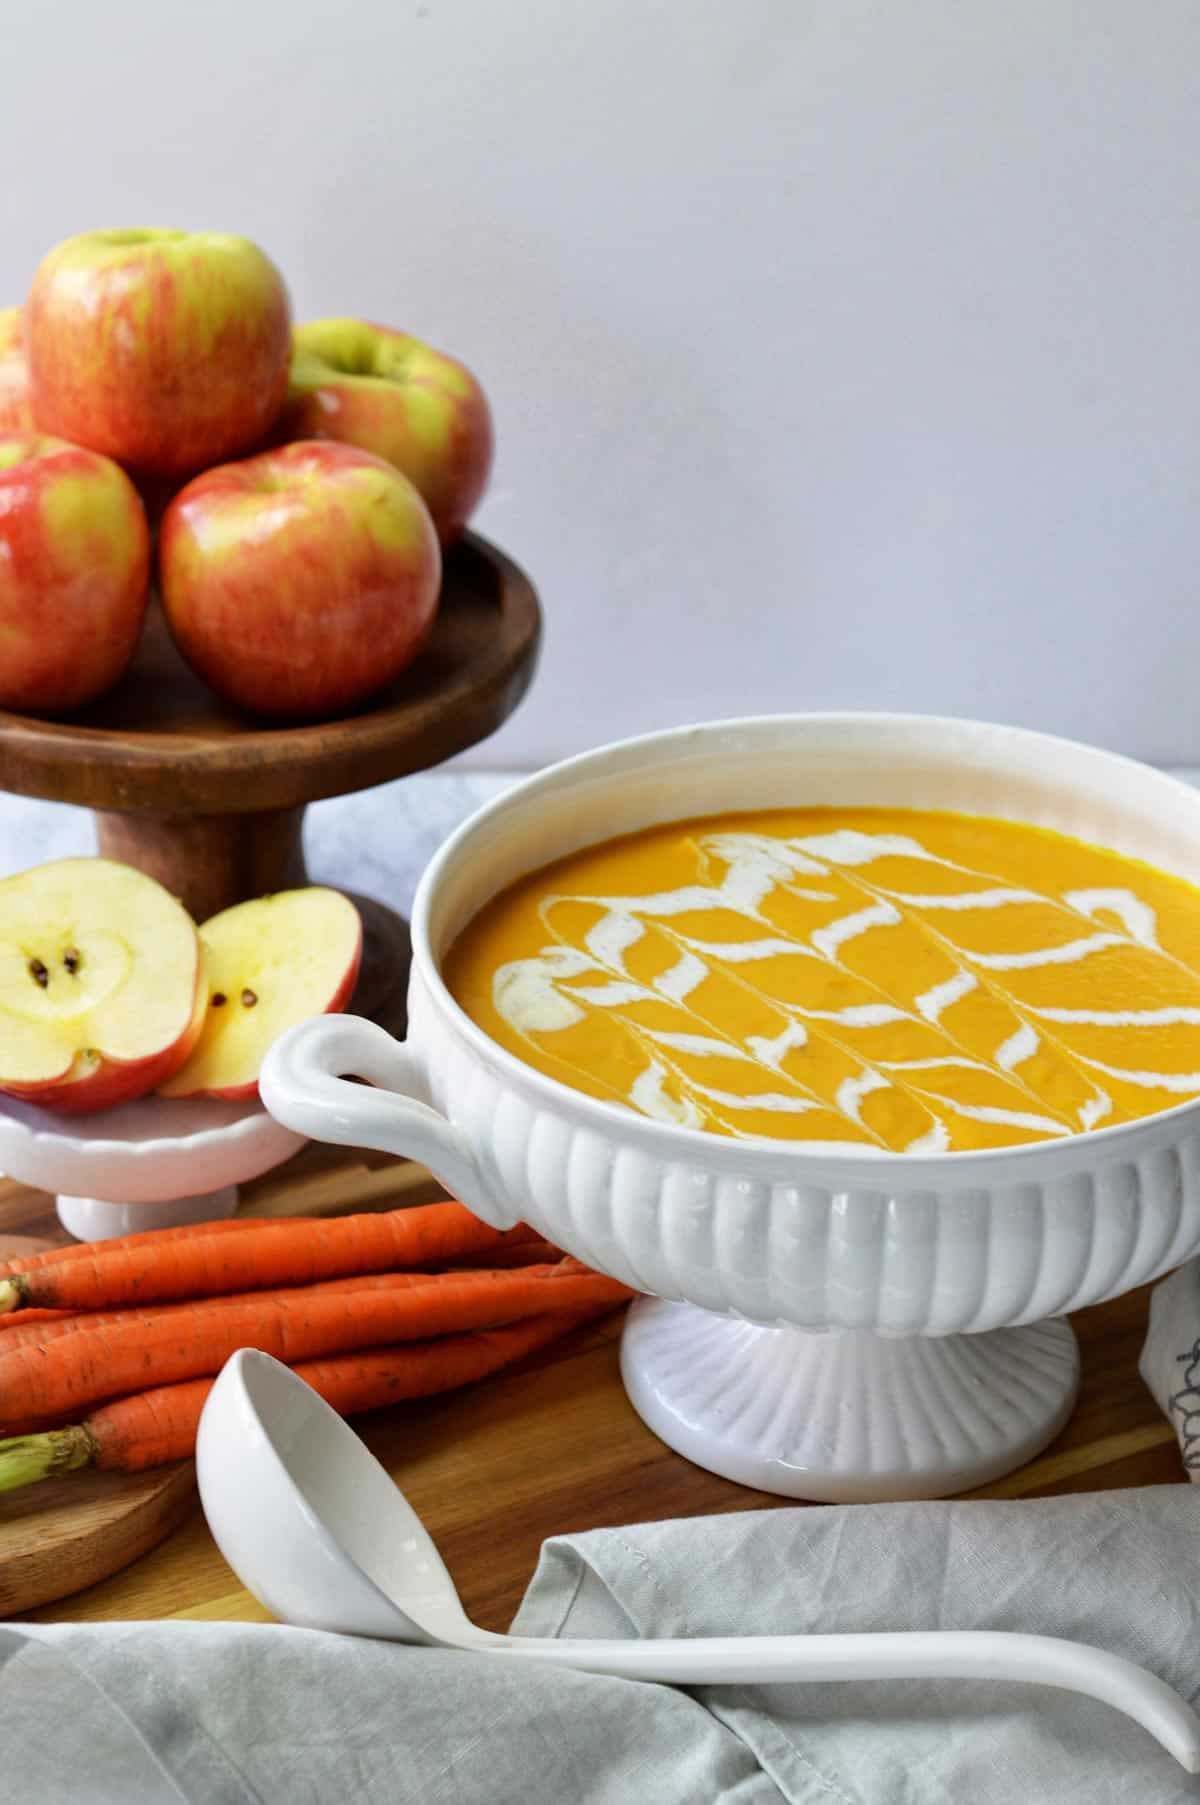 White soup tureen of carrot apple soup with bowl of apples and carrots.